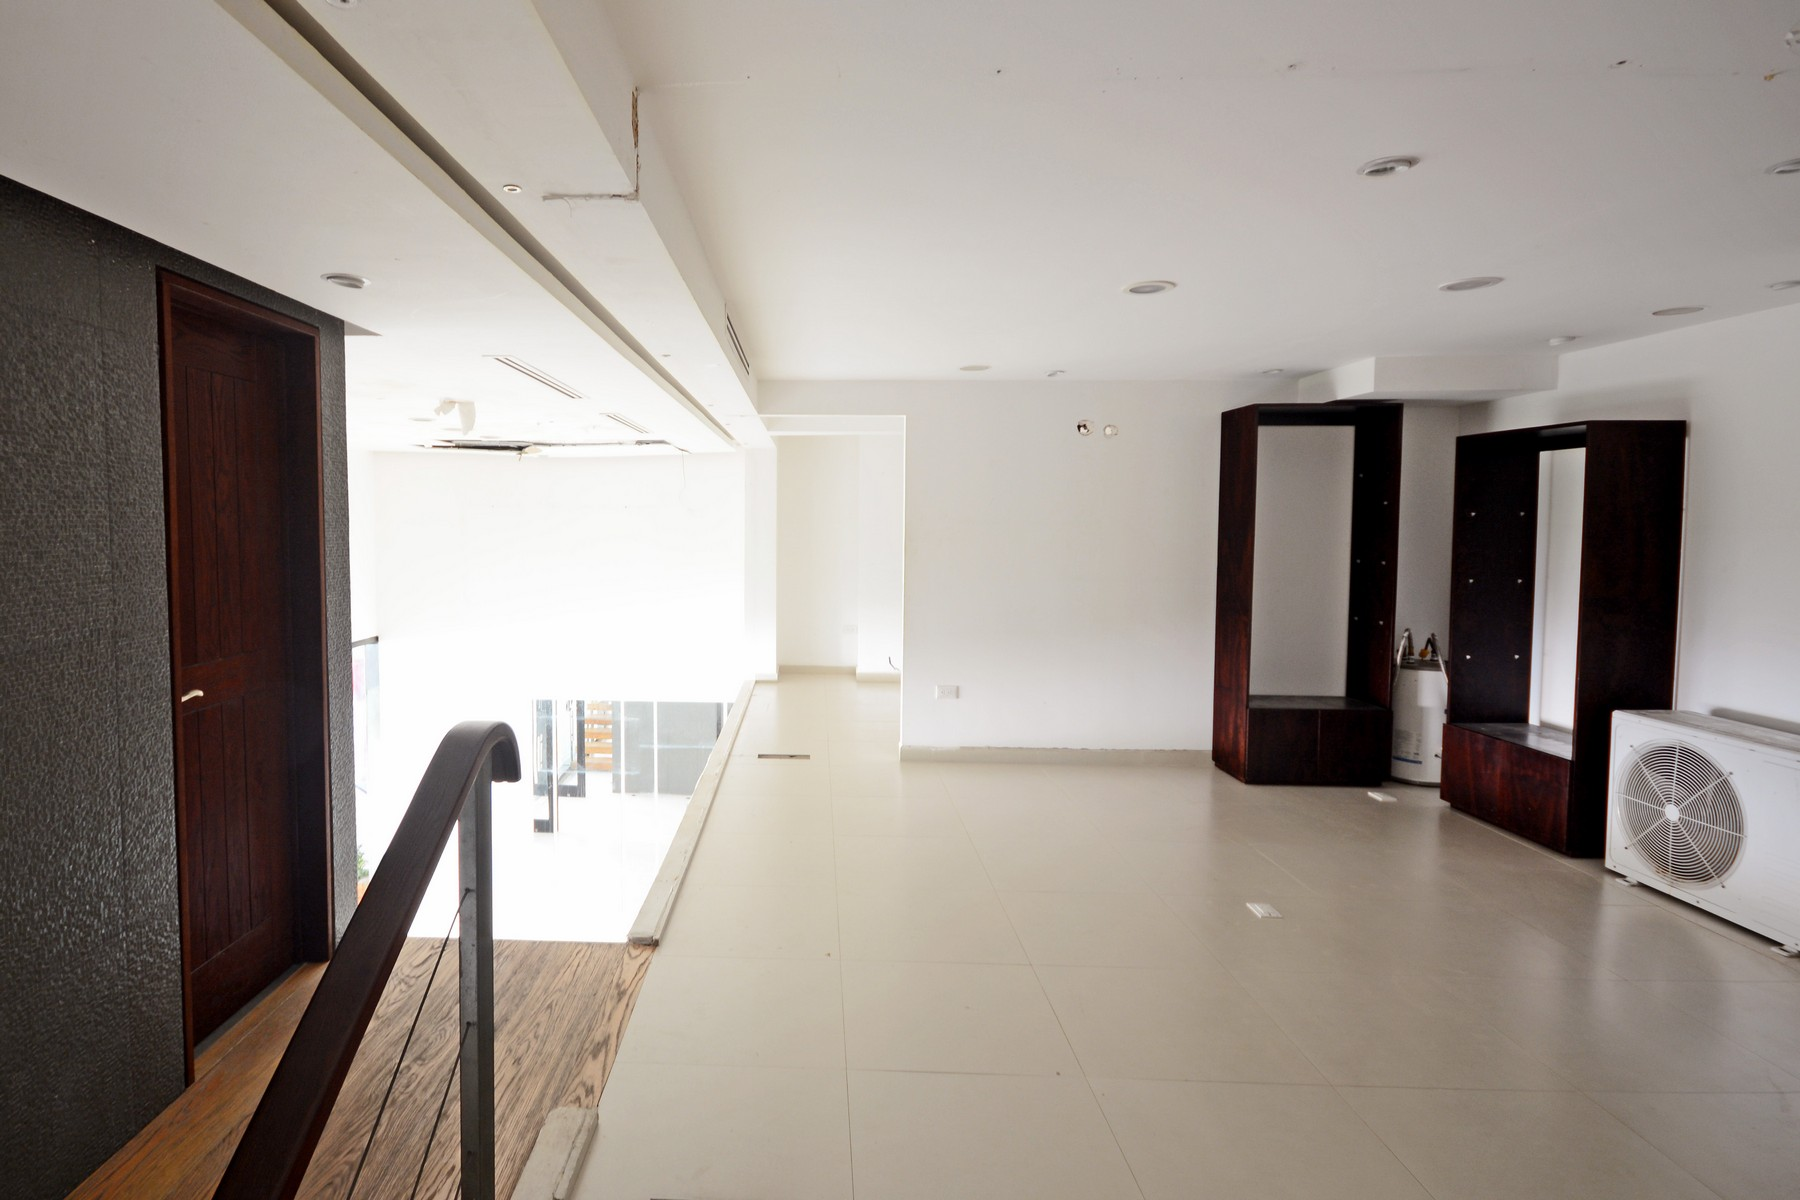 Additional photo for property listing at ALDEA THAI 23 COMMERCIAL SPACE Aldea Thai #23 Avenida Cozumel entre las Calles 26 y 28 Norte Playa Del Carmen, Quintana Roo 77710 Mexico